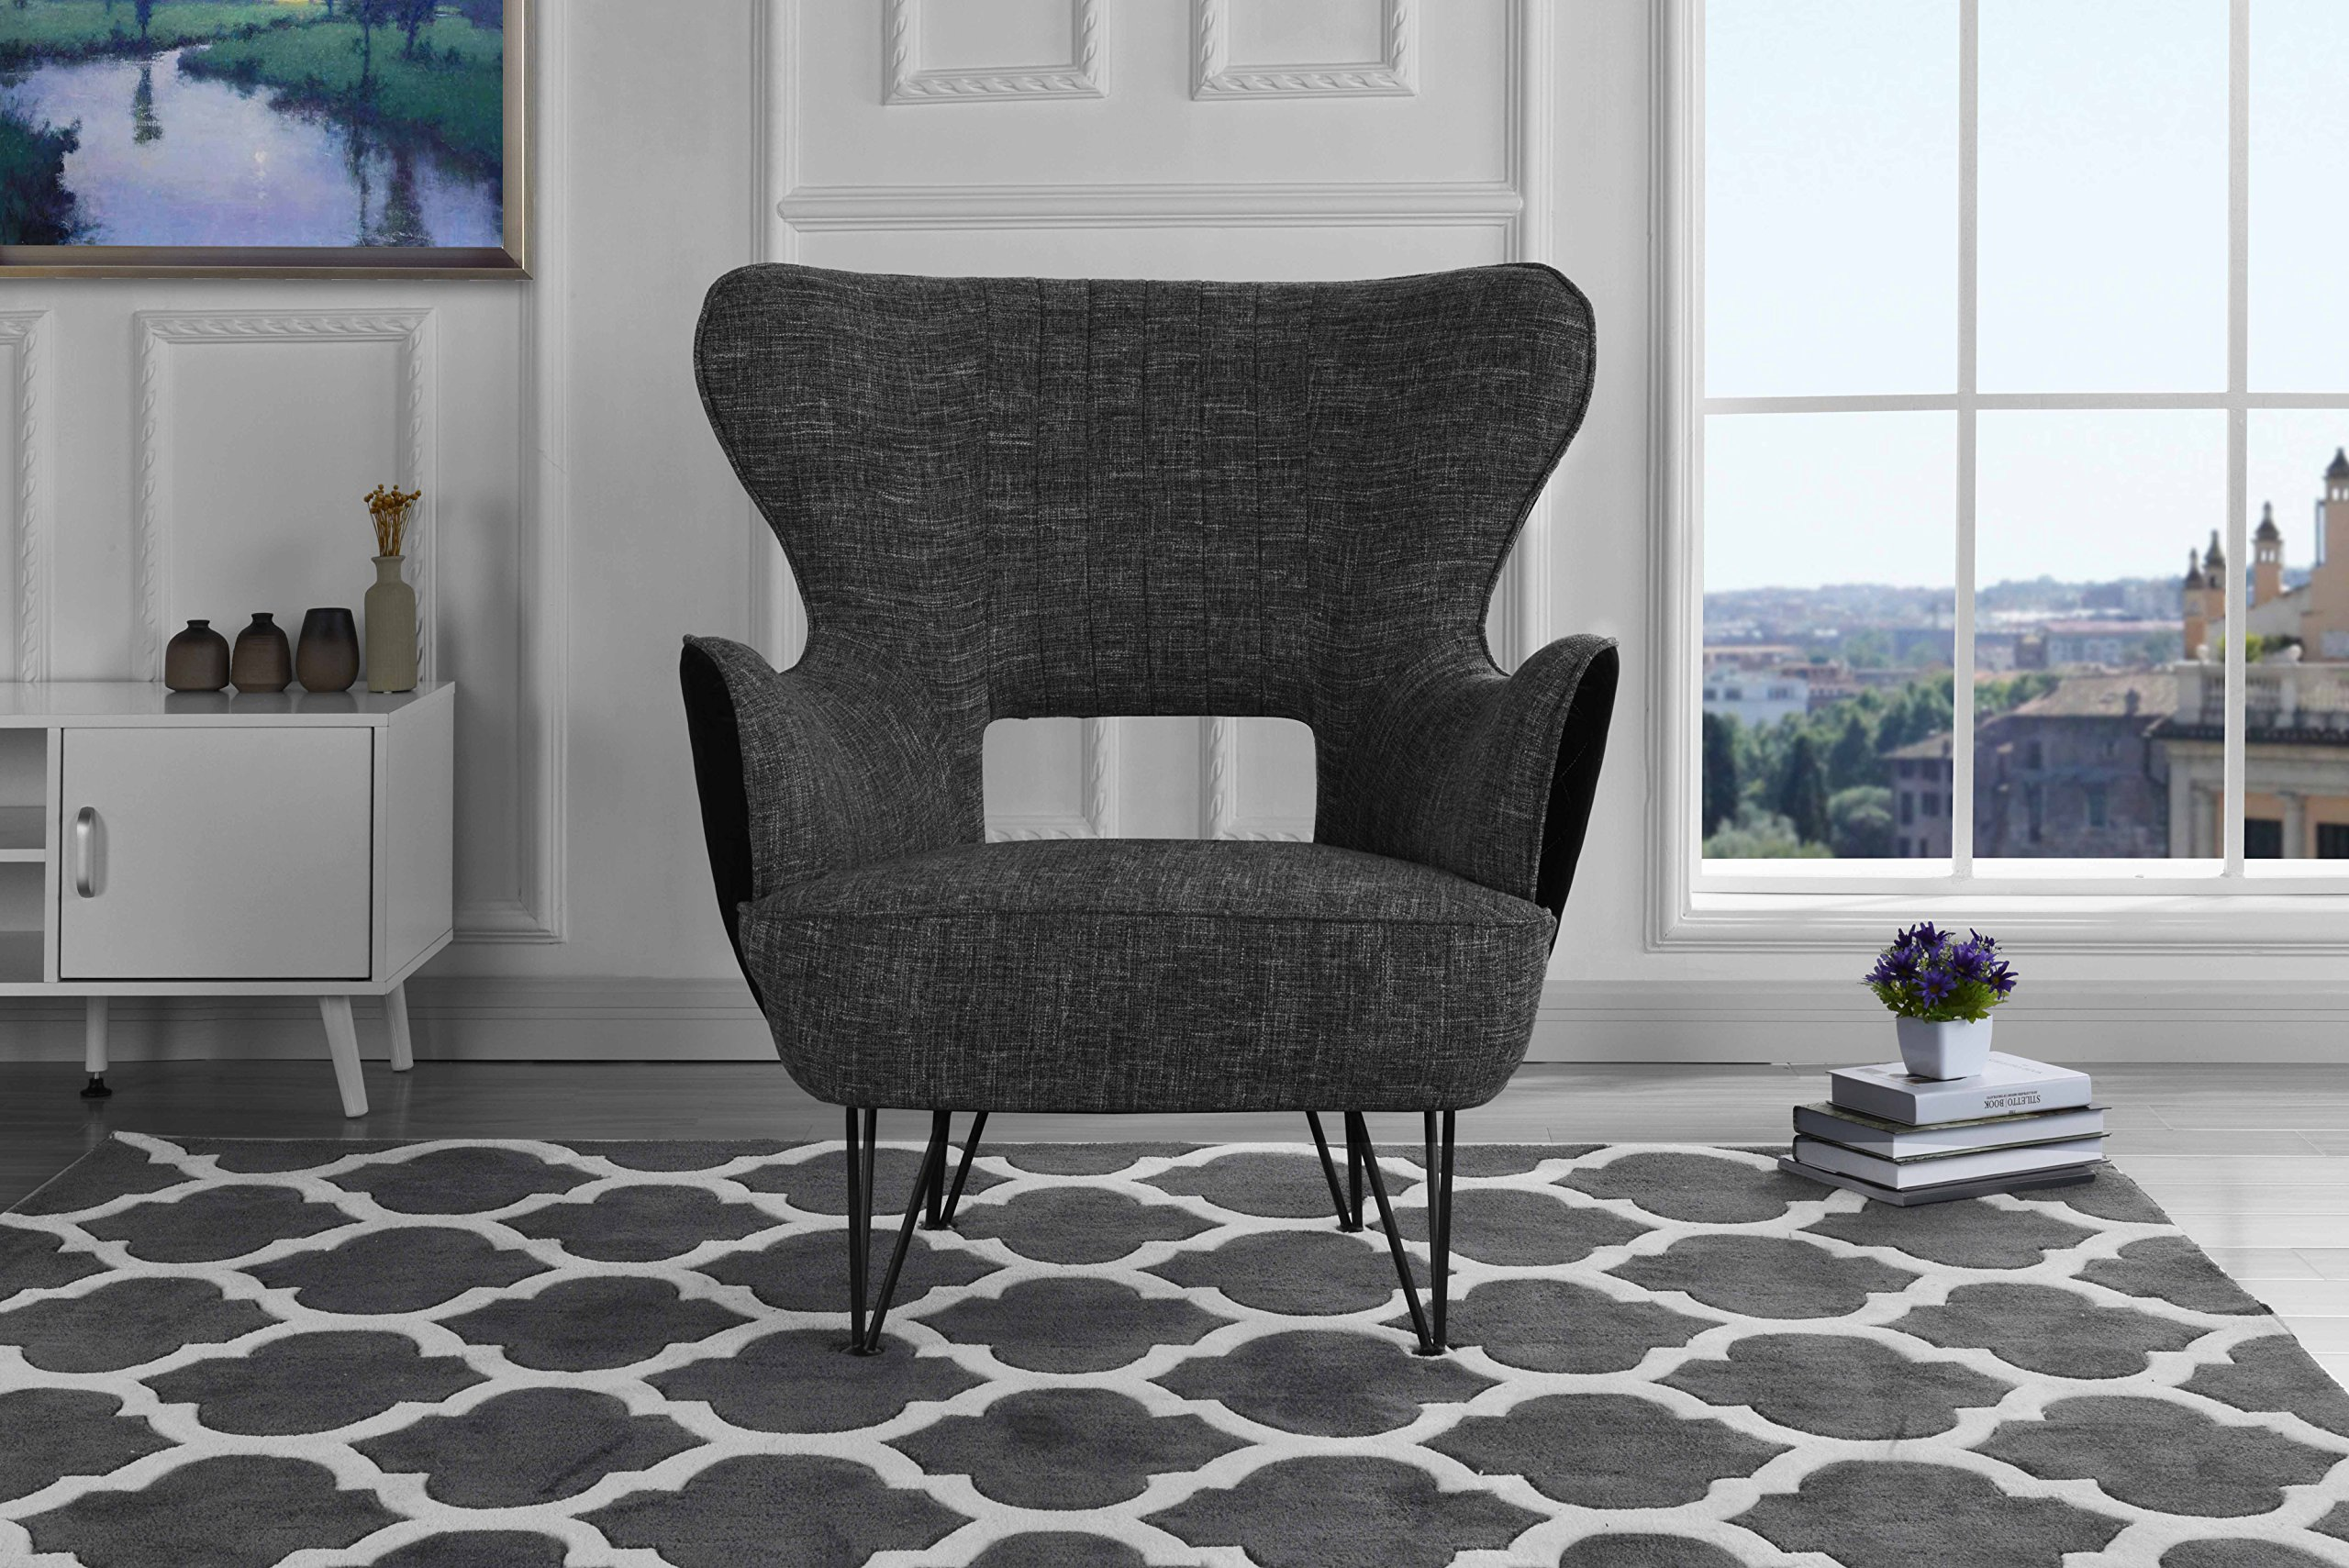 Mid-Century Modern Two-Tone Linen Fabric Accent Armchair with Shelter Style Living Room Chair (Dark Grey/Black) - Armchair with a futuristic yet mid-century modern feel with shelter frame and other modern accents. Features hand picked soft linen and microfiber two-tone fabric with a pleated detail on back rest and pin-legs. Hardwood frame with upholstery in various colors to best fit your decor and style. Tight seat filled with high density foam with comfort foam around frame and back as well. - living-room-furniture, living-room, accent-chairs - 91uVLObaI2L -